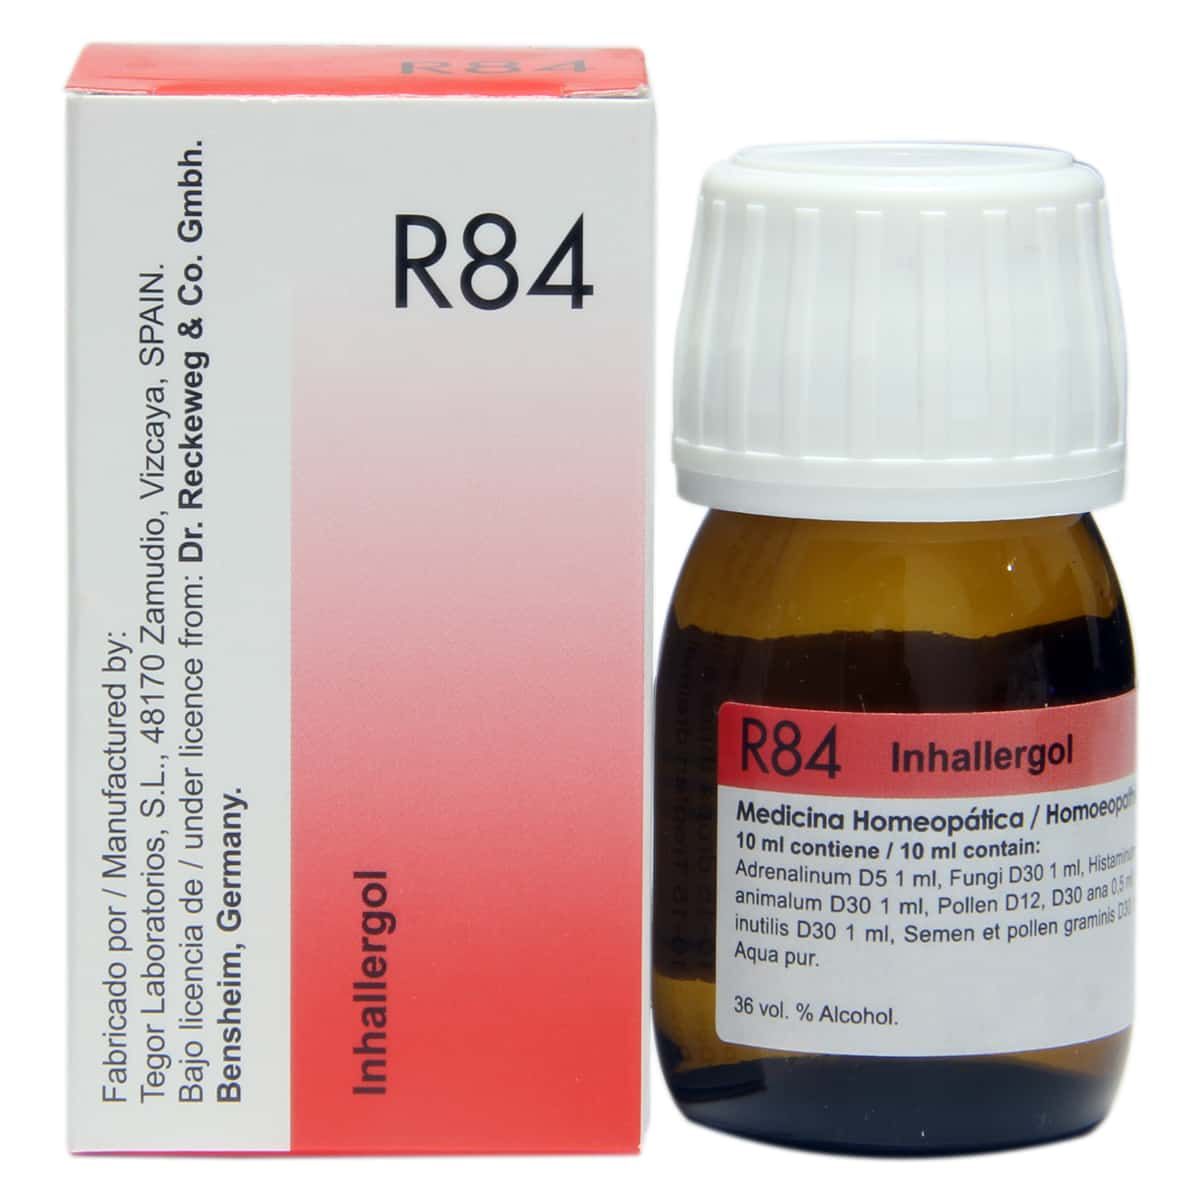 R84-Homeopathicology.com